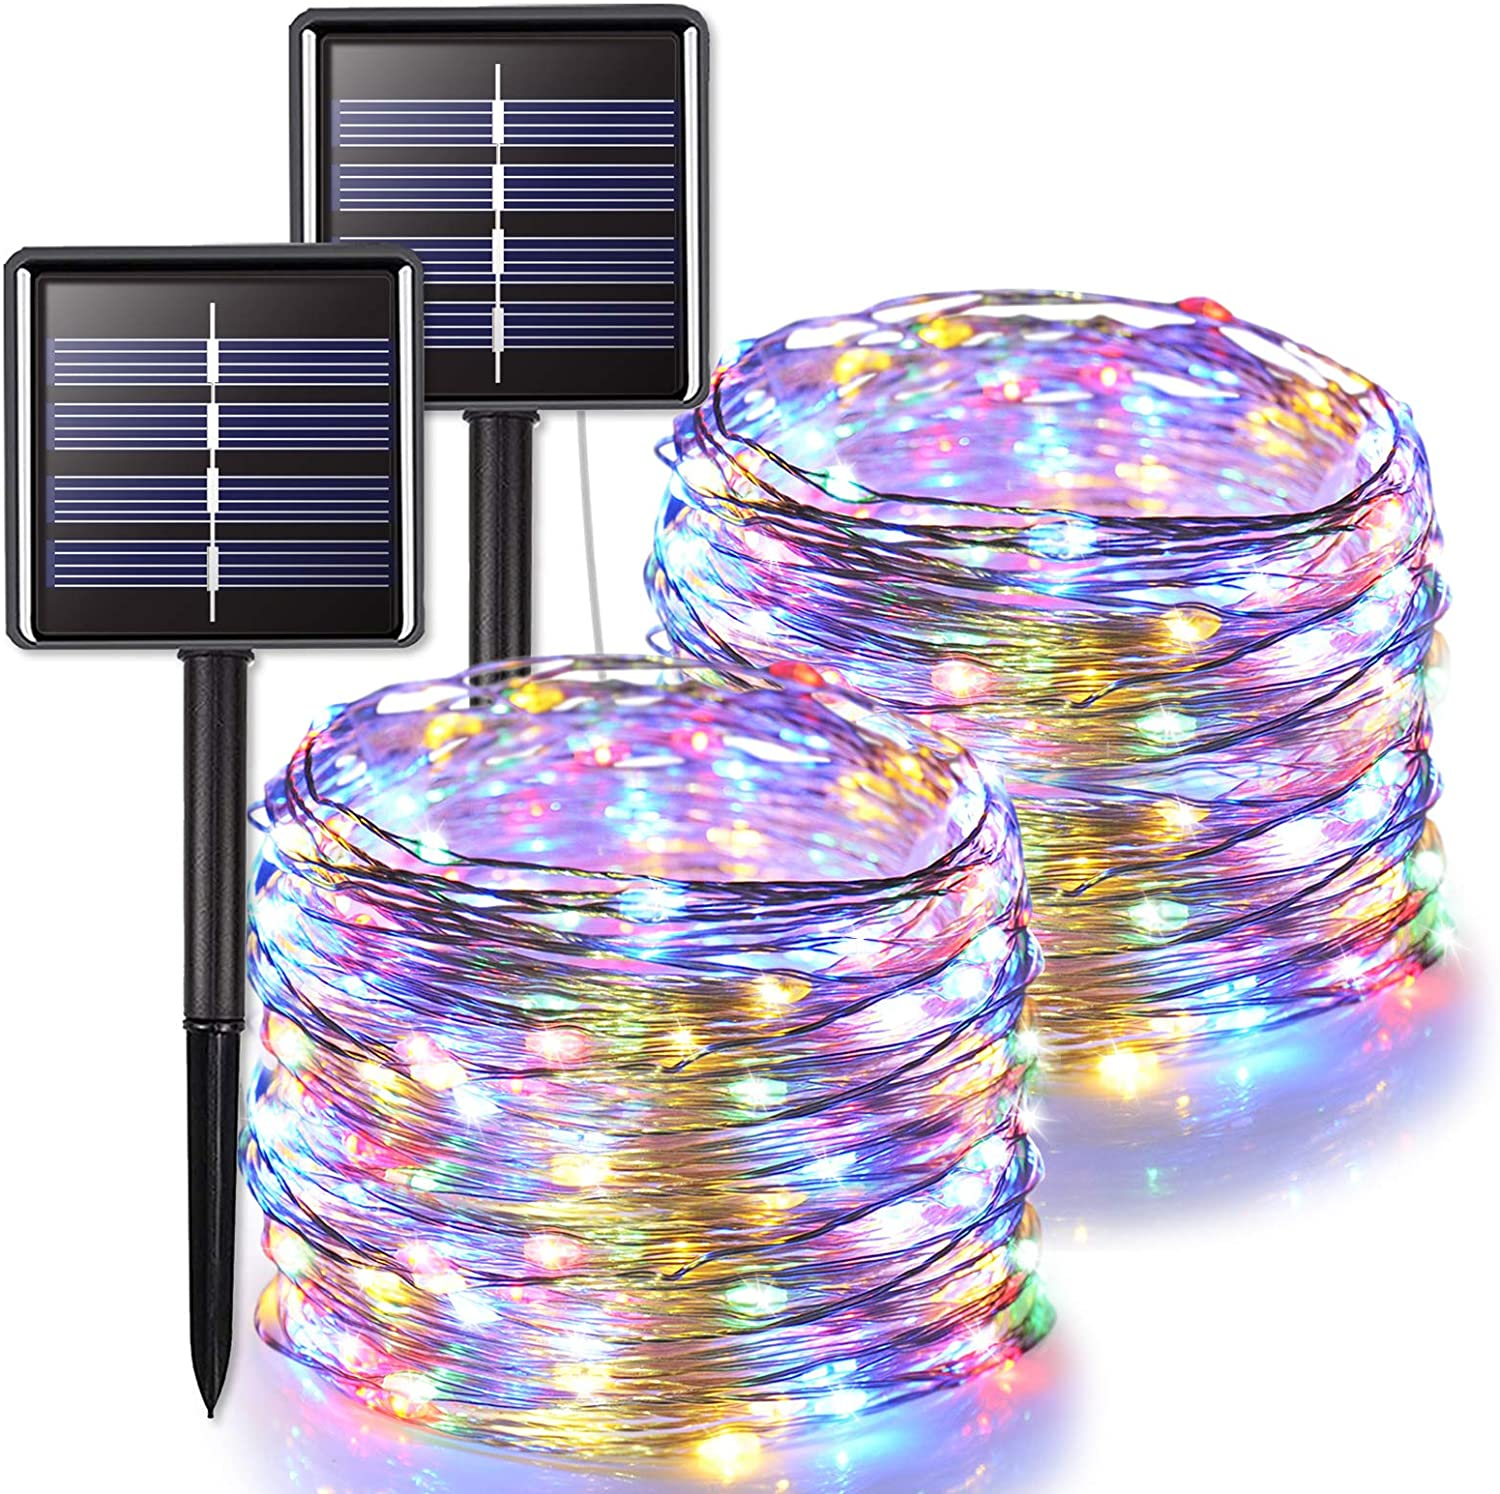 JMEXSUSS 2 Pack Solar String Lights Outdoor Waterproof, 66ft 200 LED Solar Christmas Lights Multicolor, 8 Modes Silver Wire Fairy Lights for Home Garden, Patio, Wedding, Party, Xmas Decoration